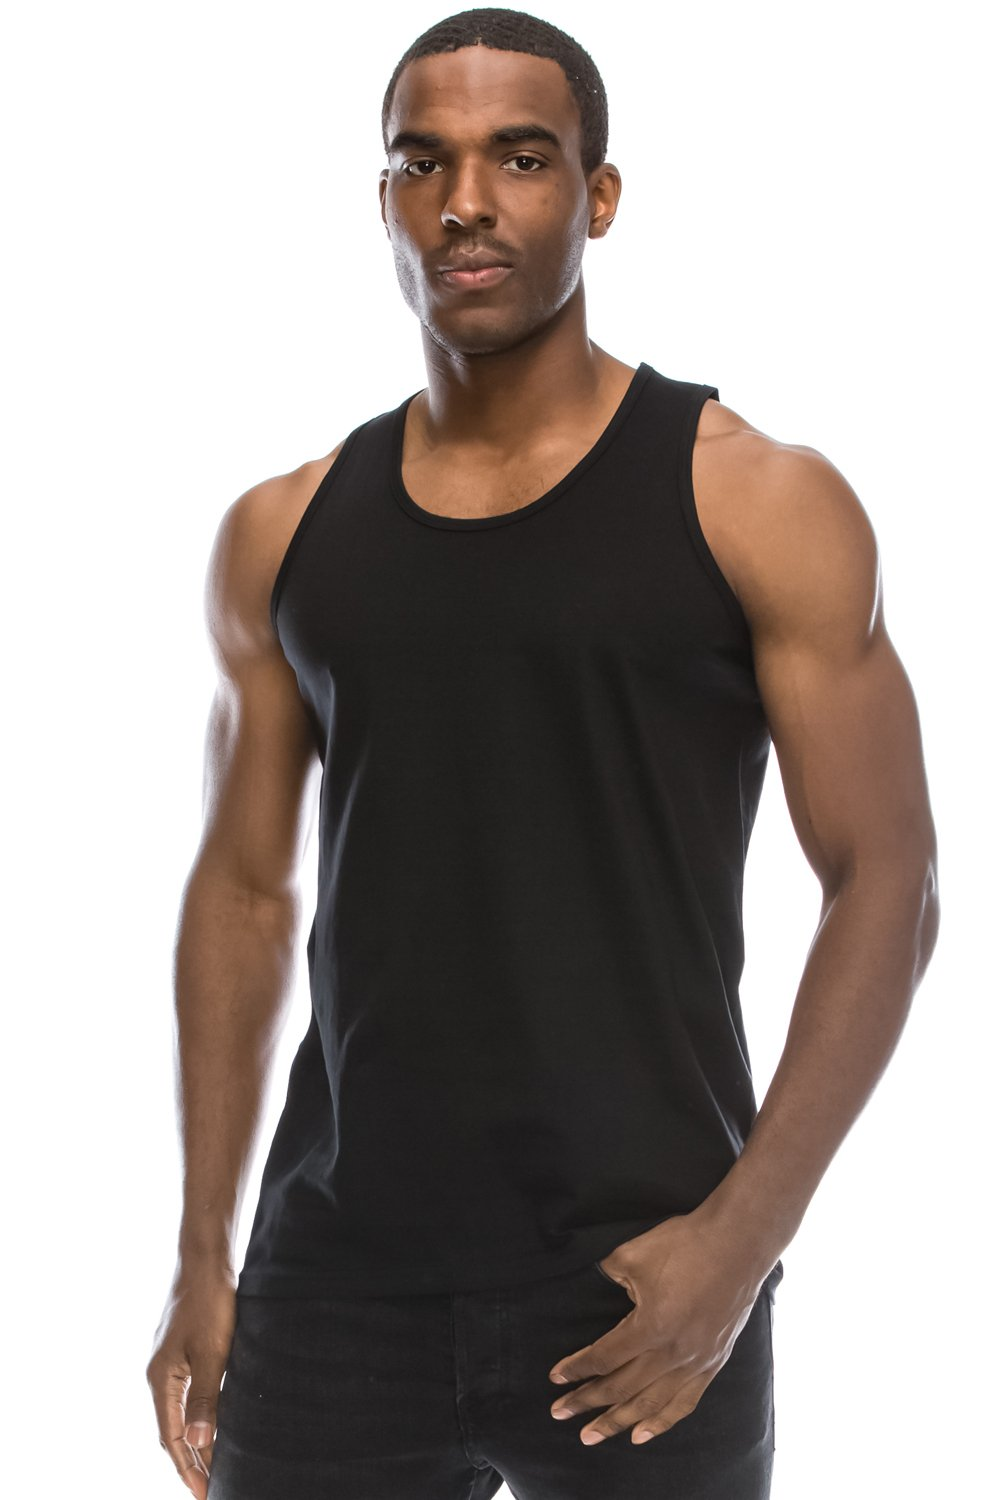 Mens Hipster Hip Hop Basic Running Solid Black Tank Top XL by JC DISTRO